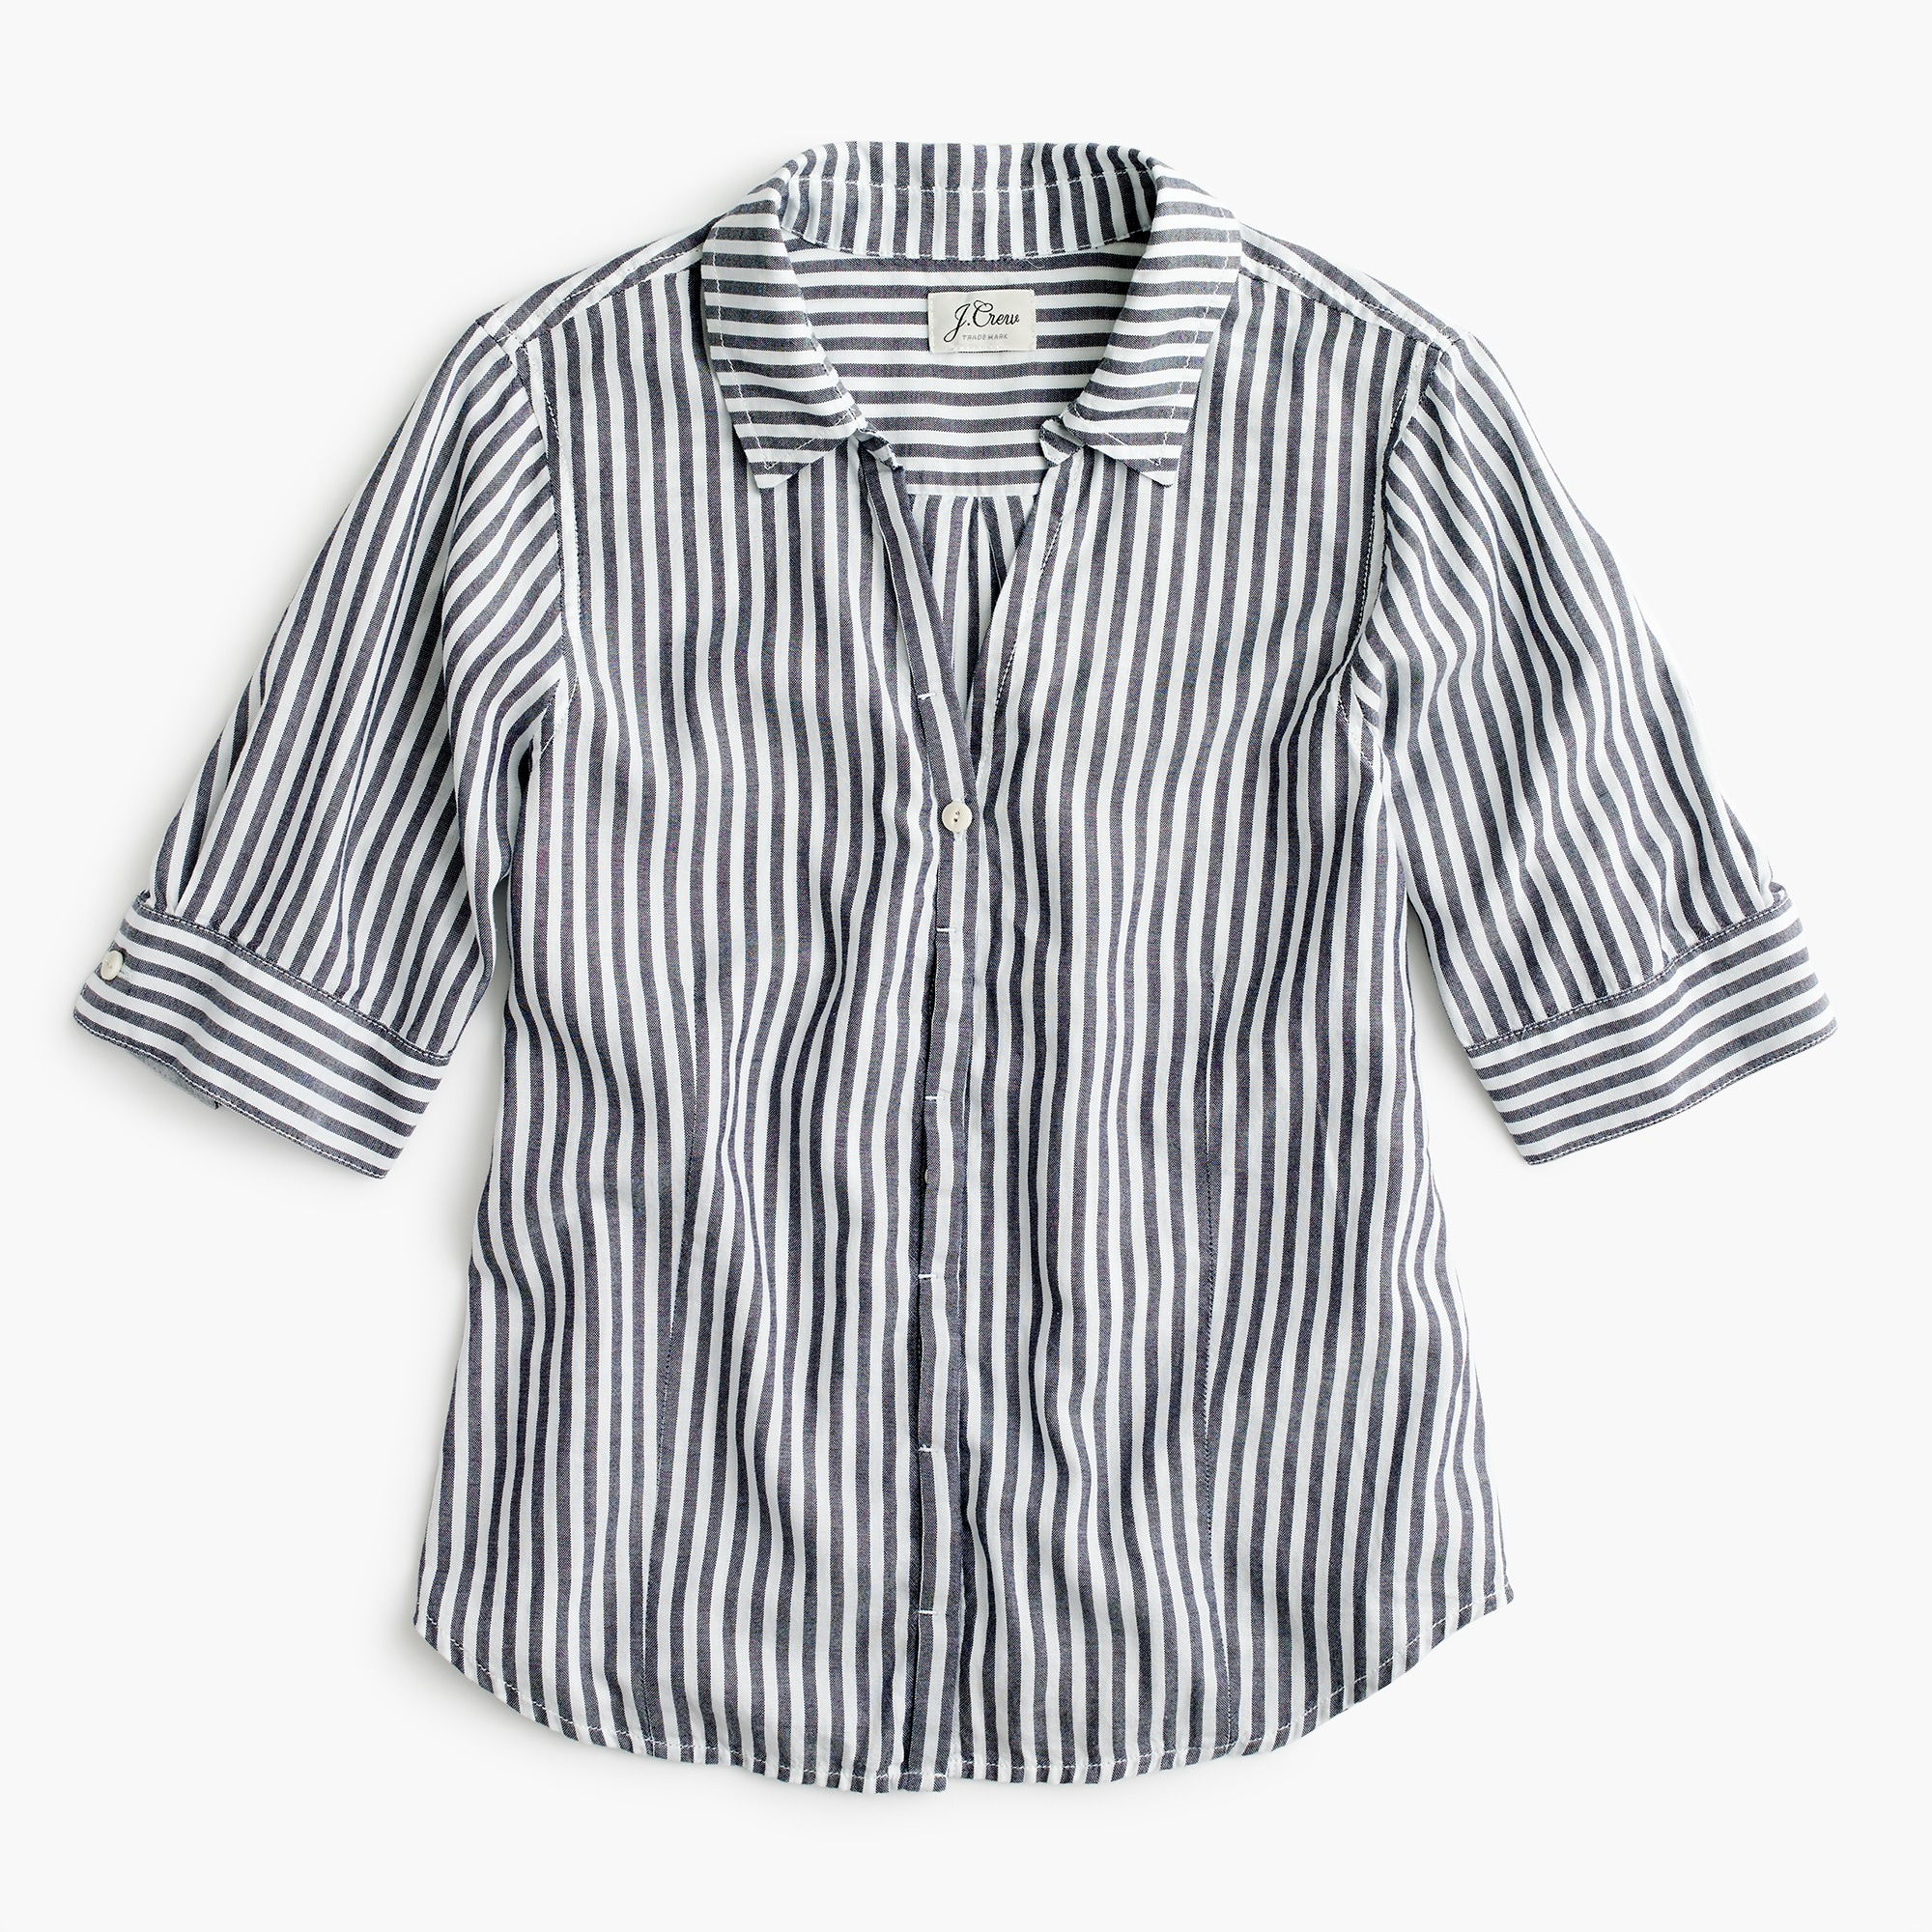 Image 2 for Petite short-sleeve button-up shirt in stripe